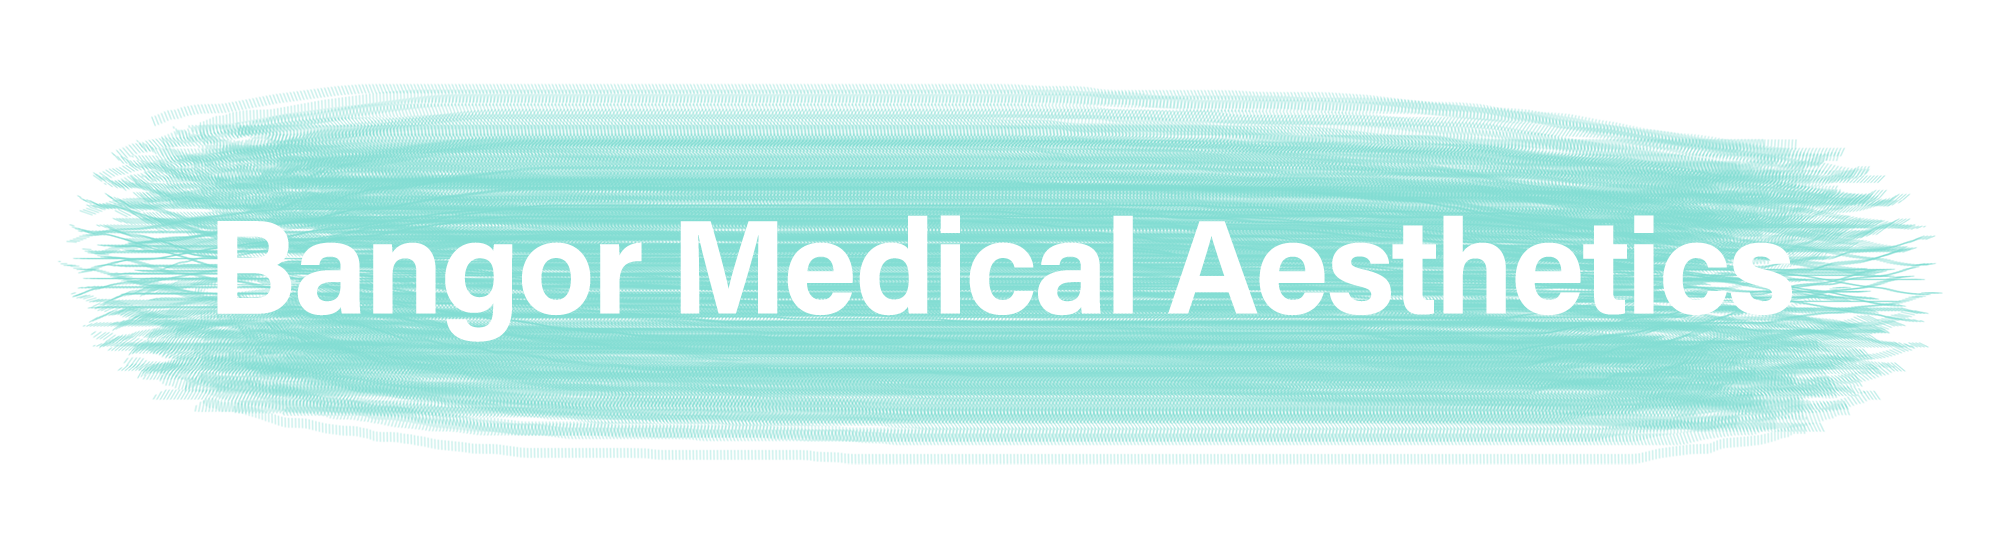 Bangor Medical Aesthetics logo